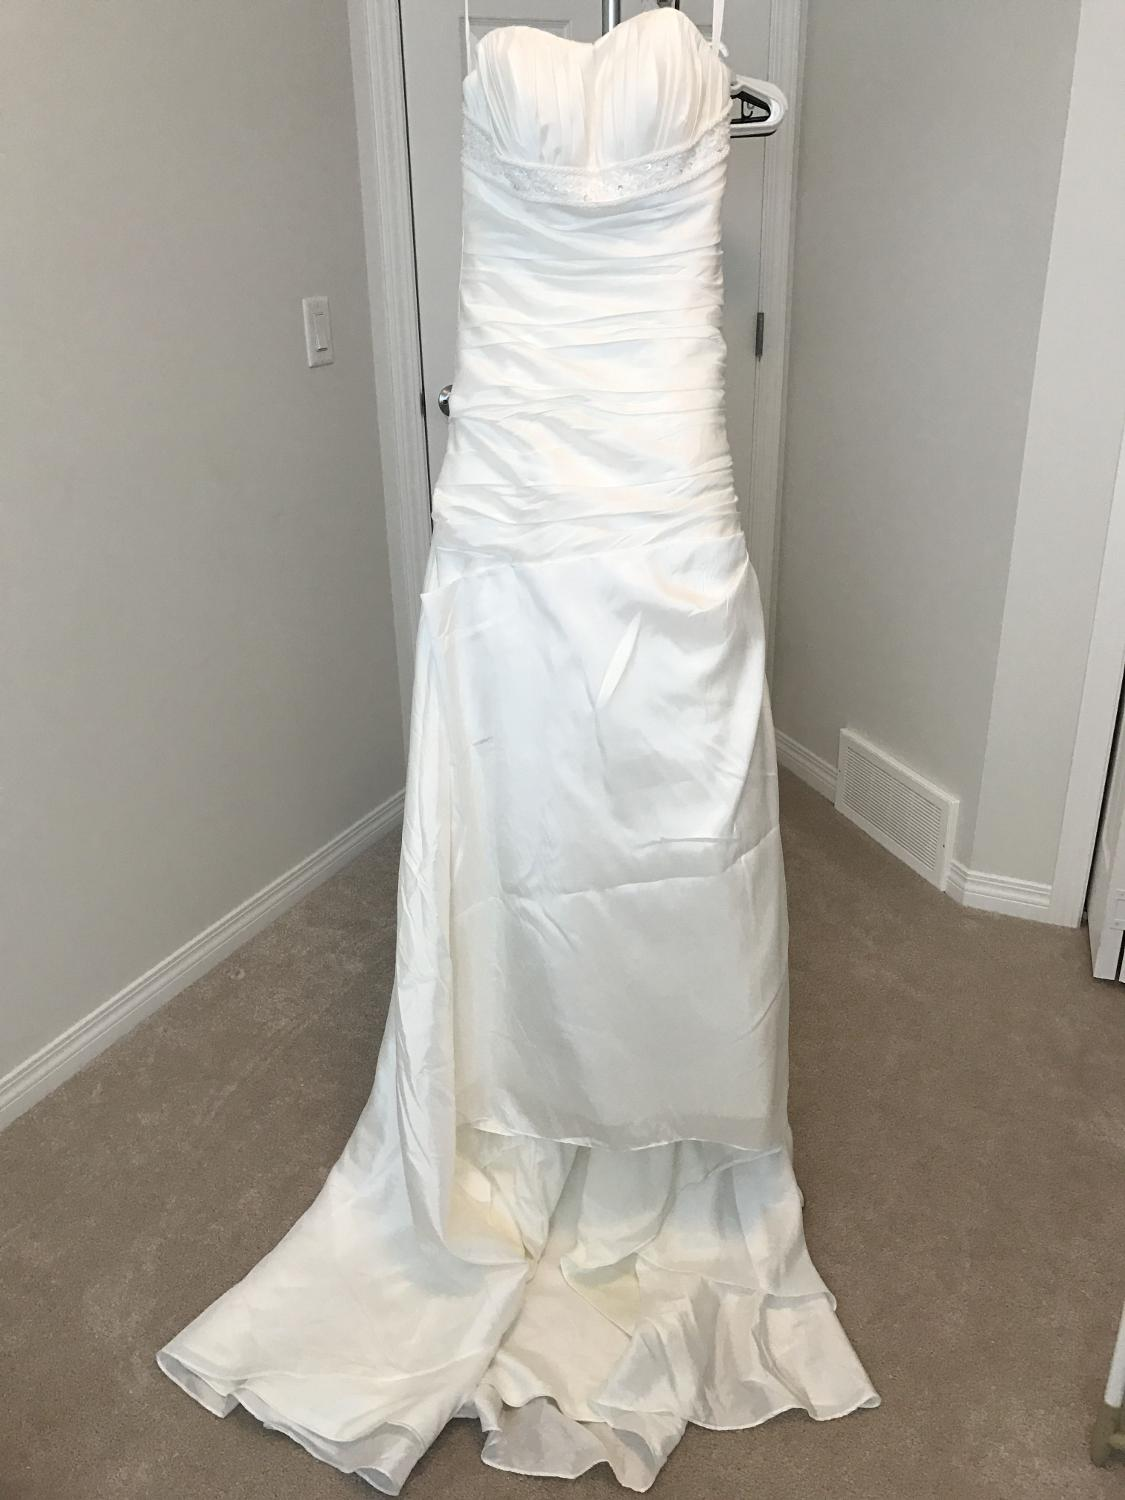 best bnwt custom wedding dress for sale in calgary alberta for 2018. Black Bedroom Furniture Sets. Home Design Ideas